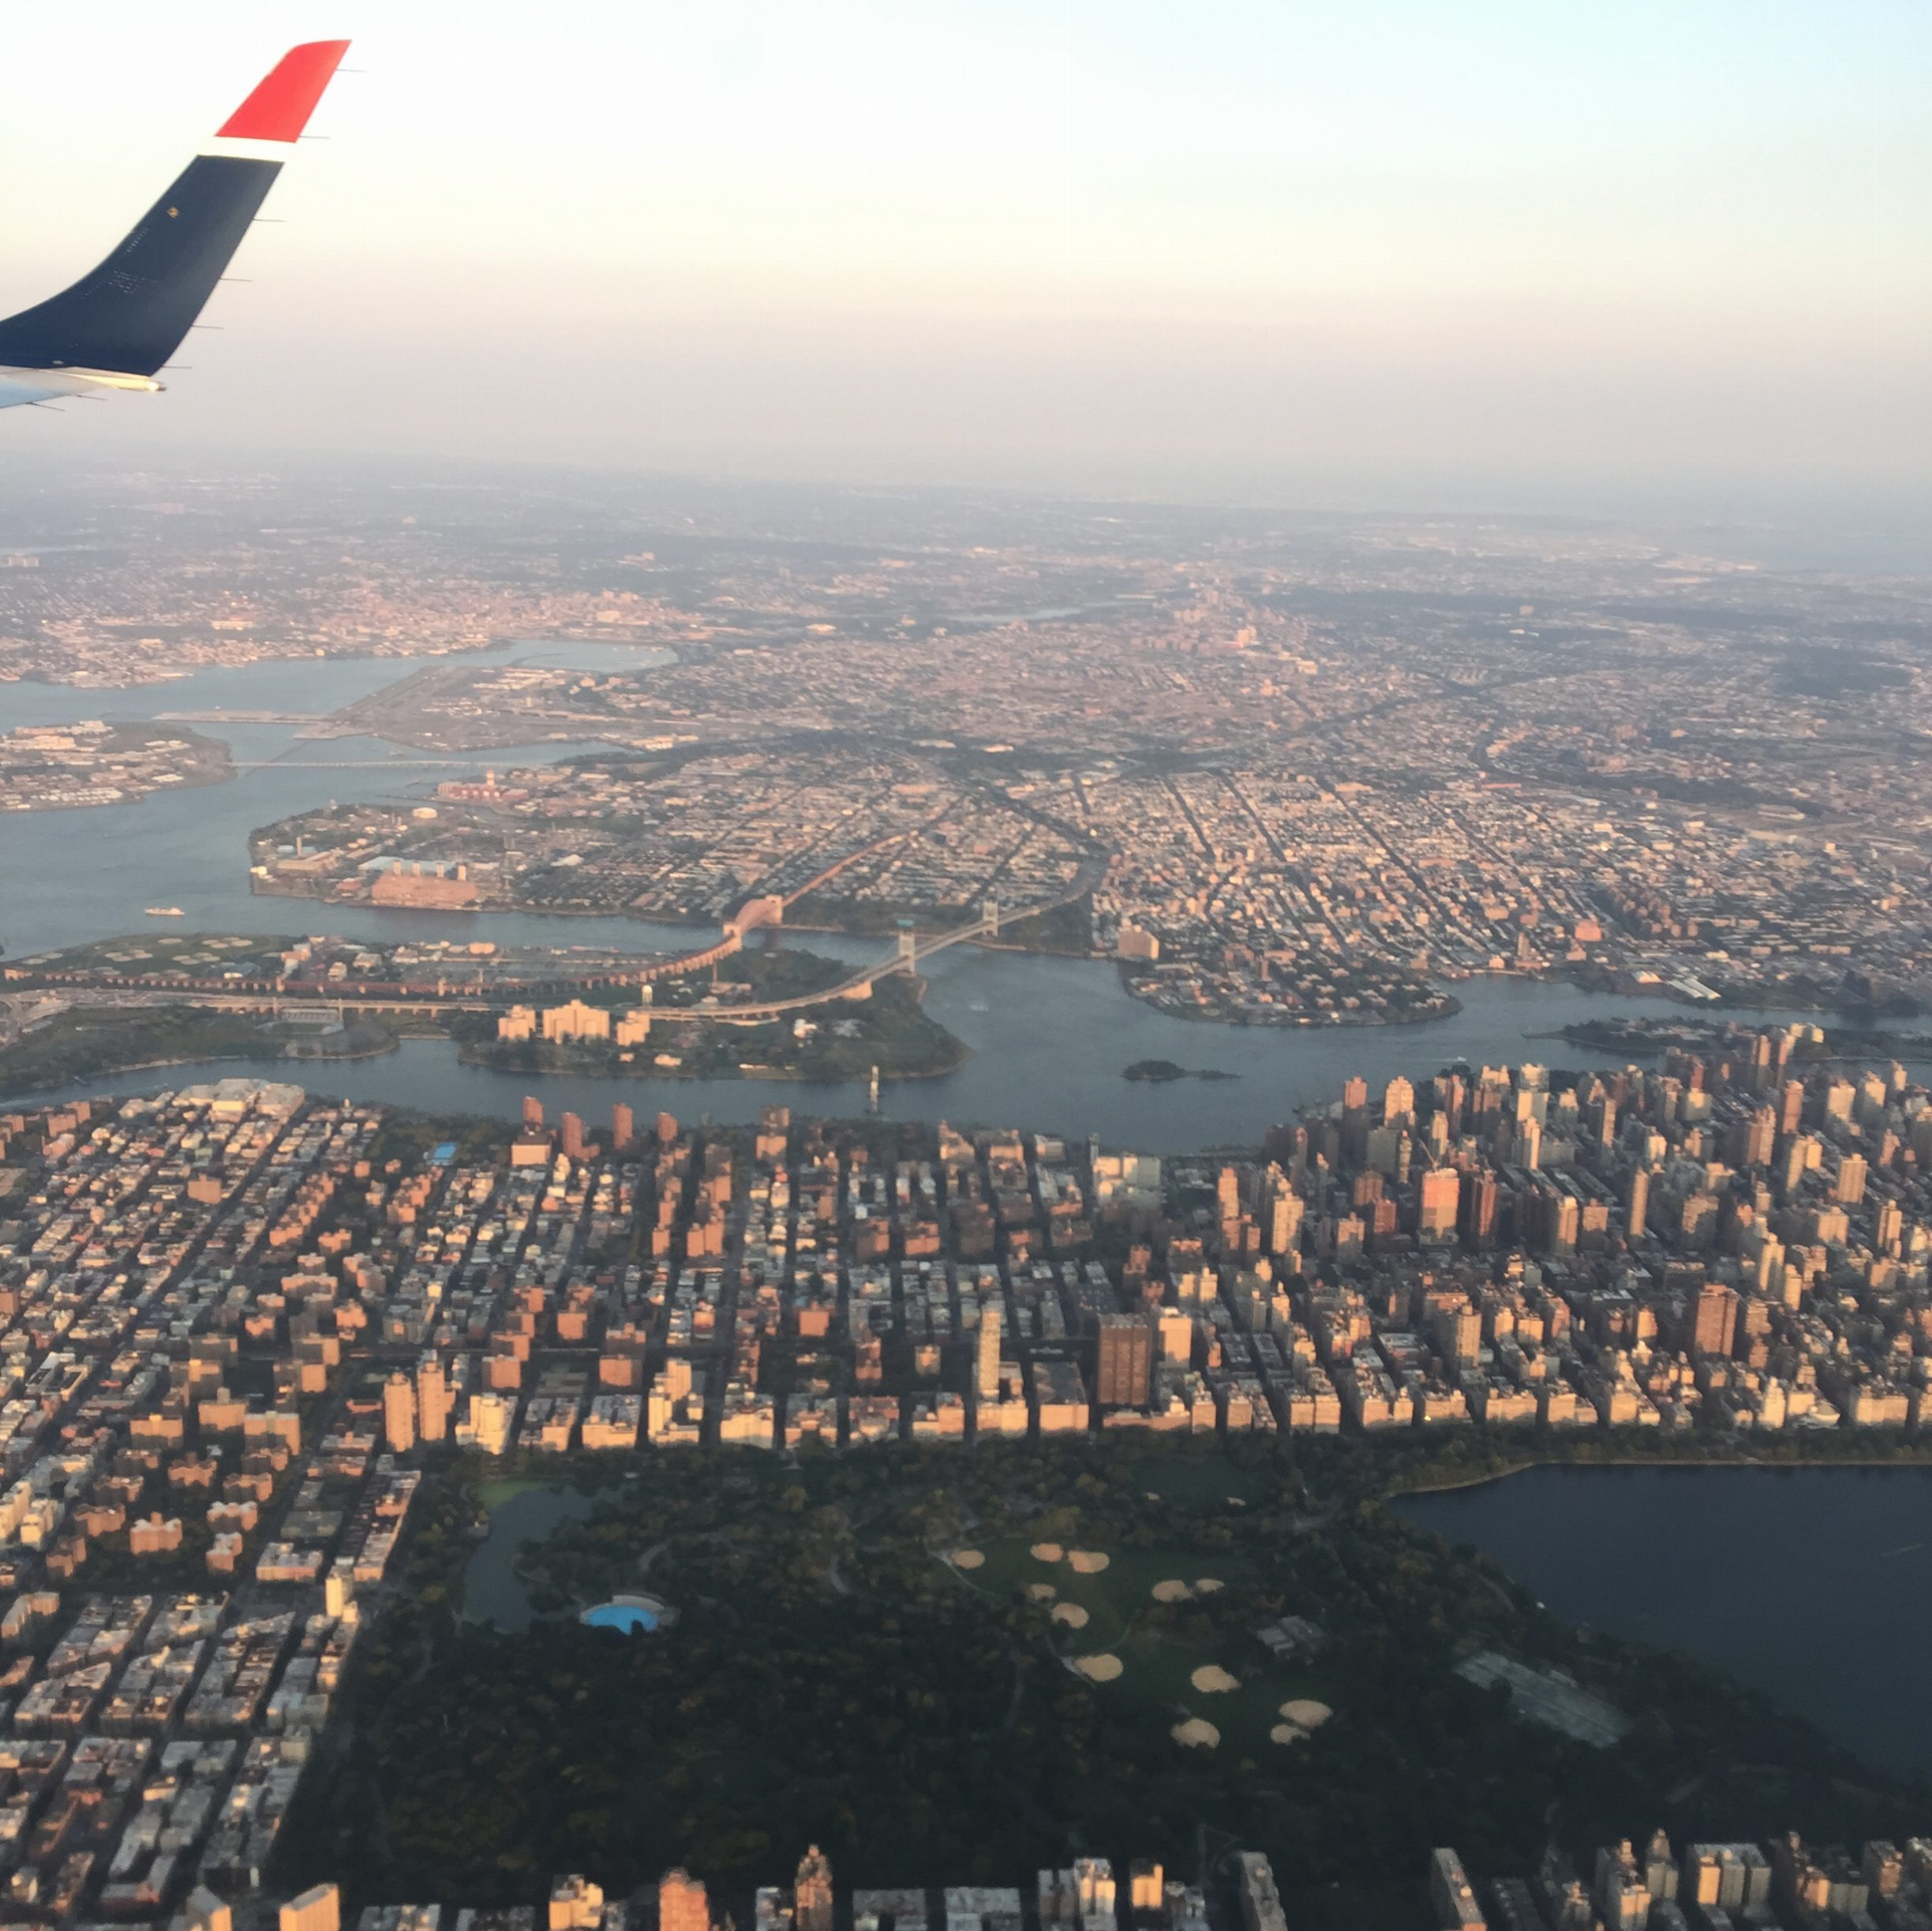 Flying over Central Park en route to La Guardia. Thank you British Airways Avios points for making flying to NYC a viable option.